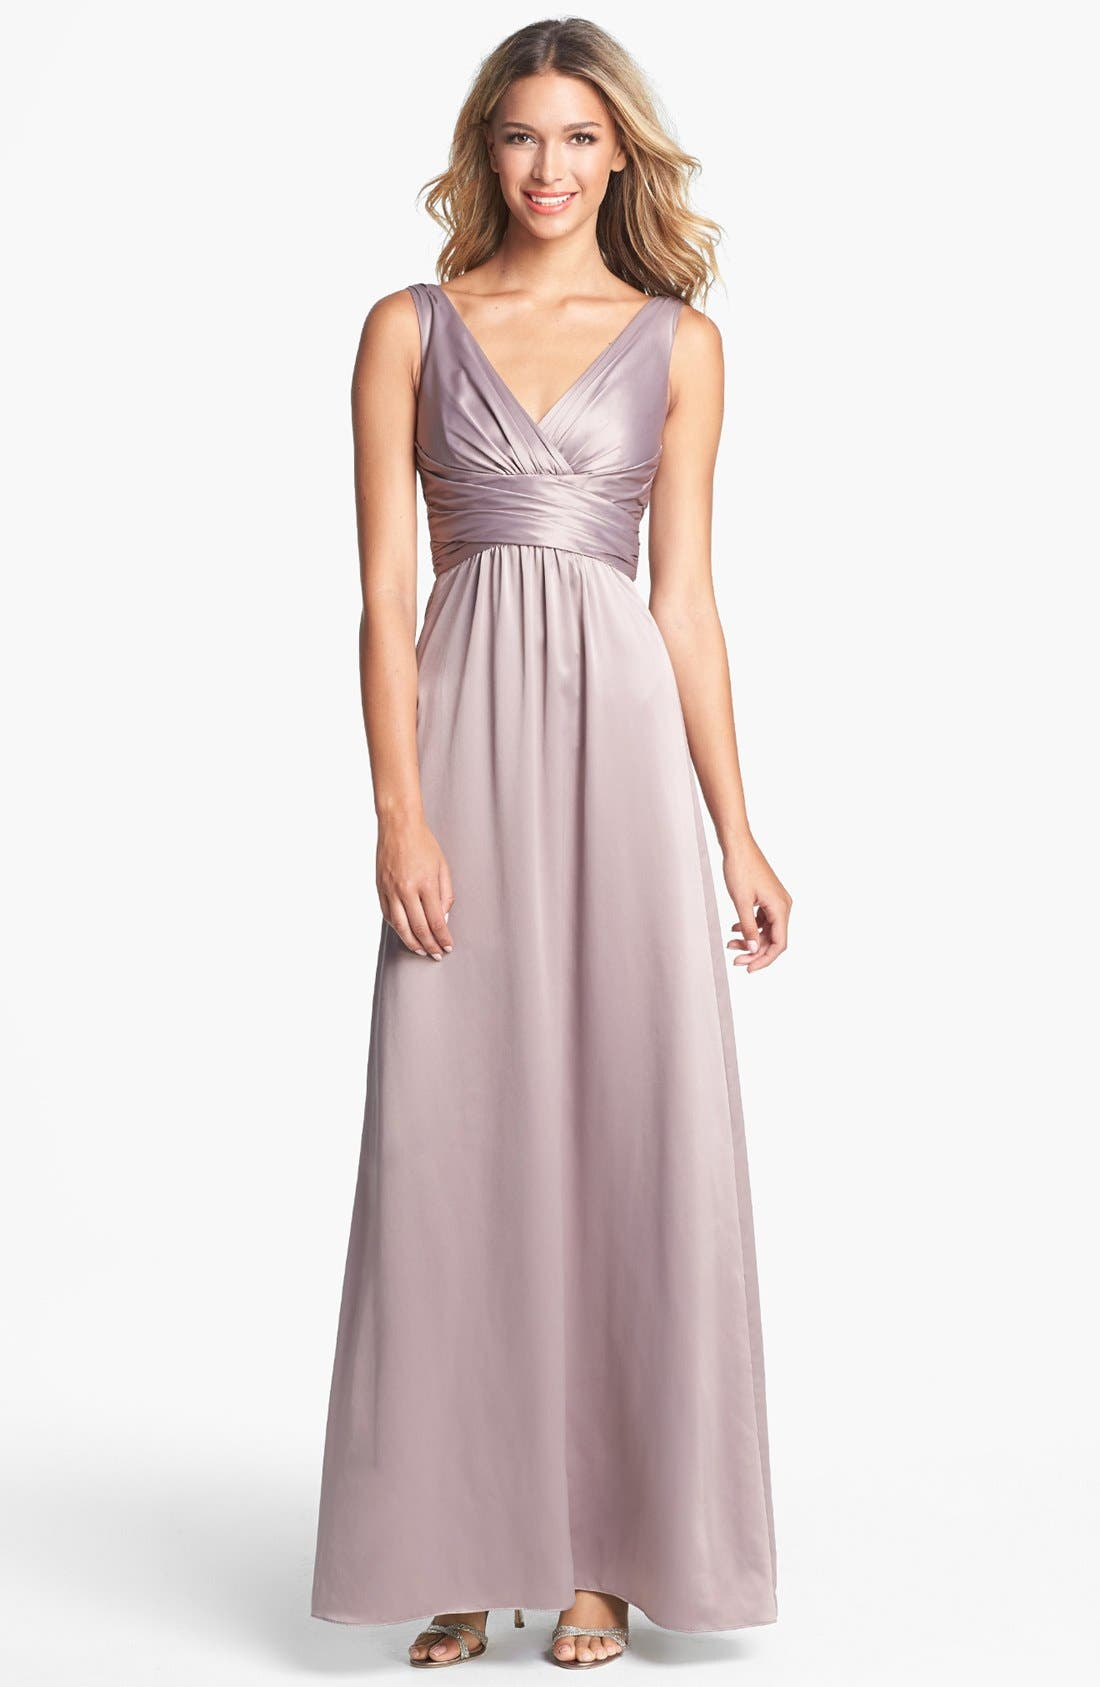 Main Image - Amsale Long Charmeuse Dress